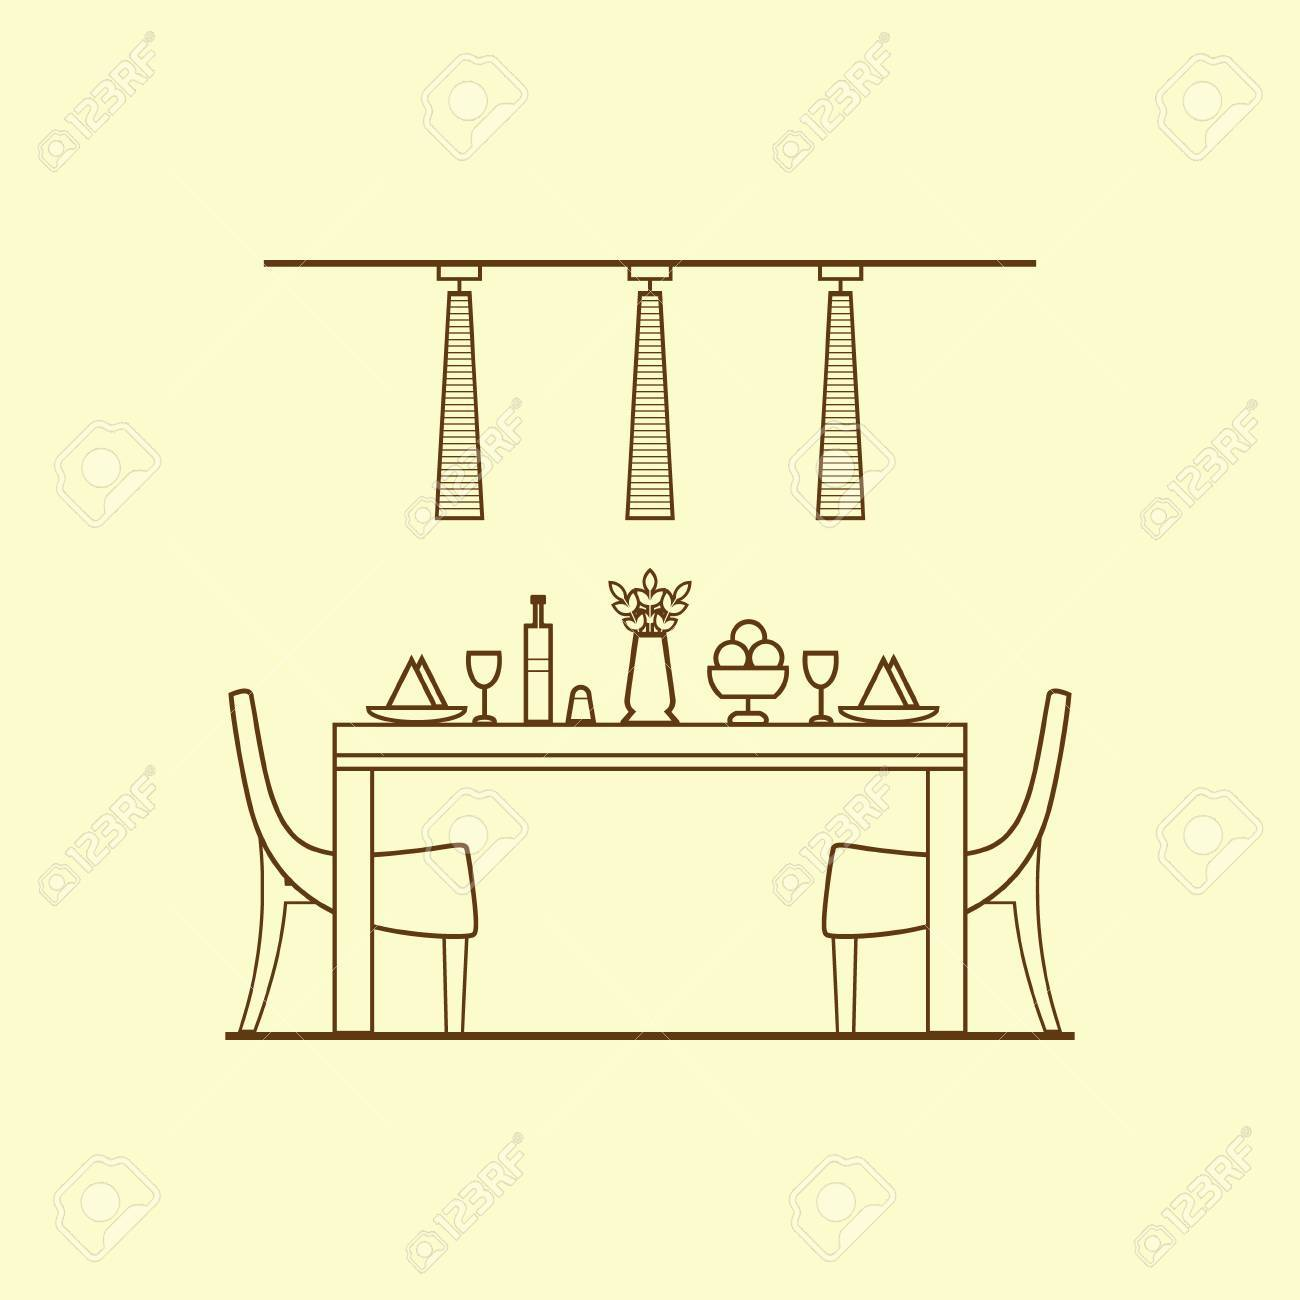 Dining Room Design Made Of Thin Line Concept With Utensils